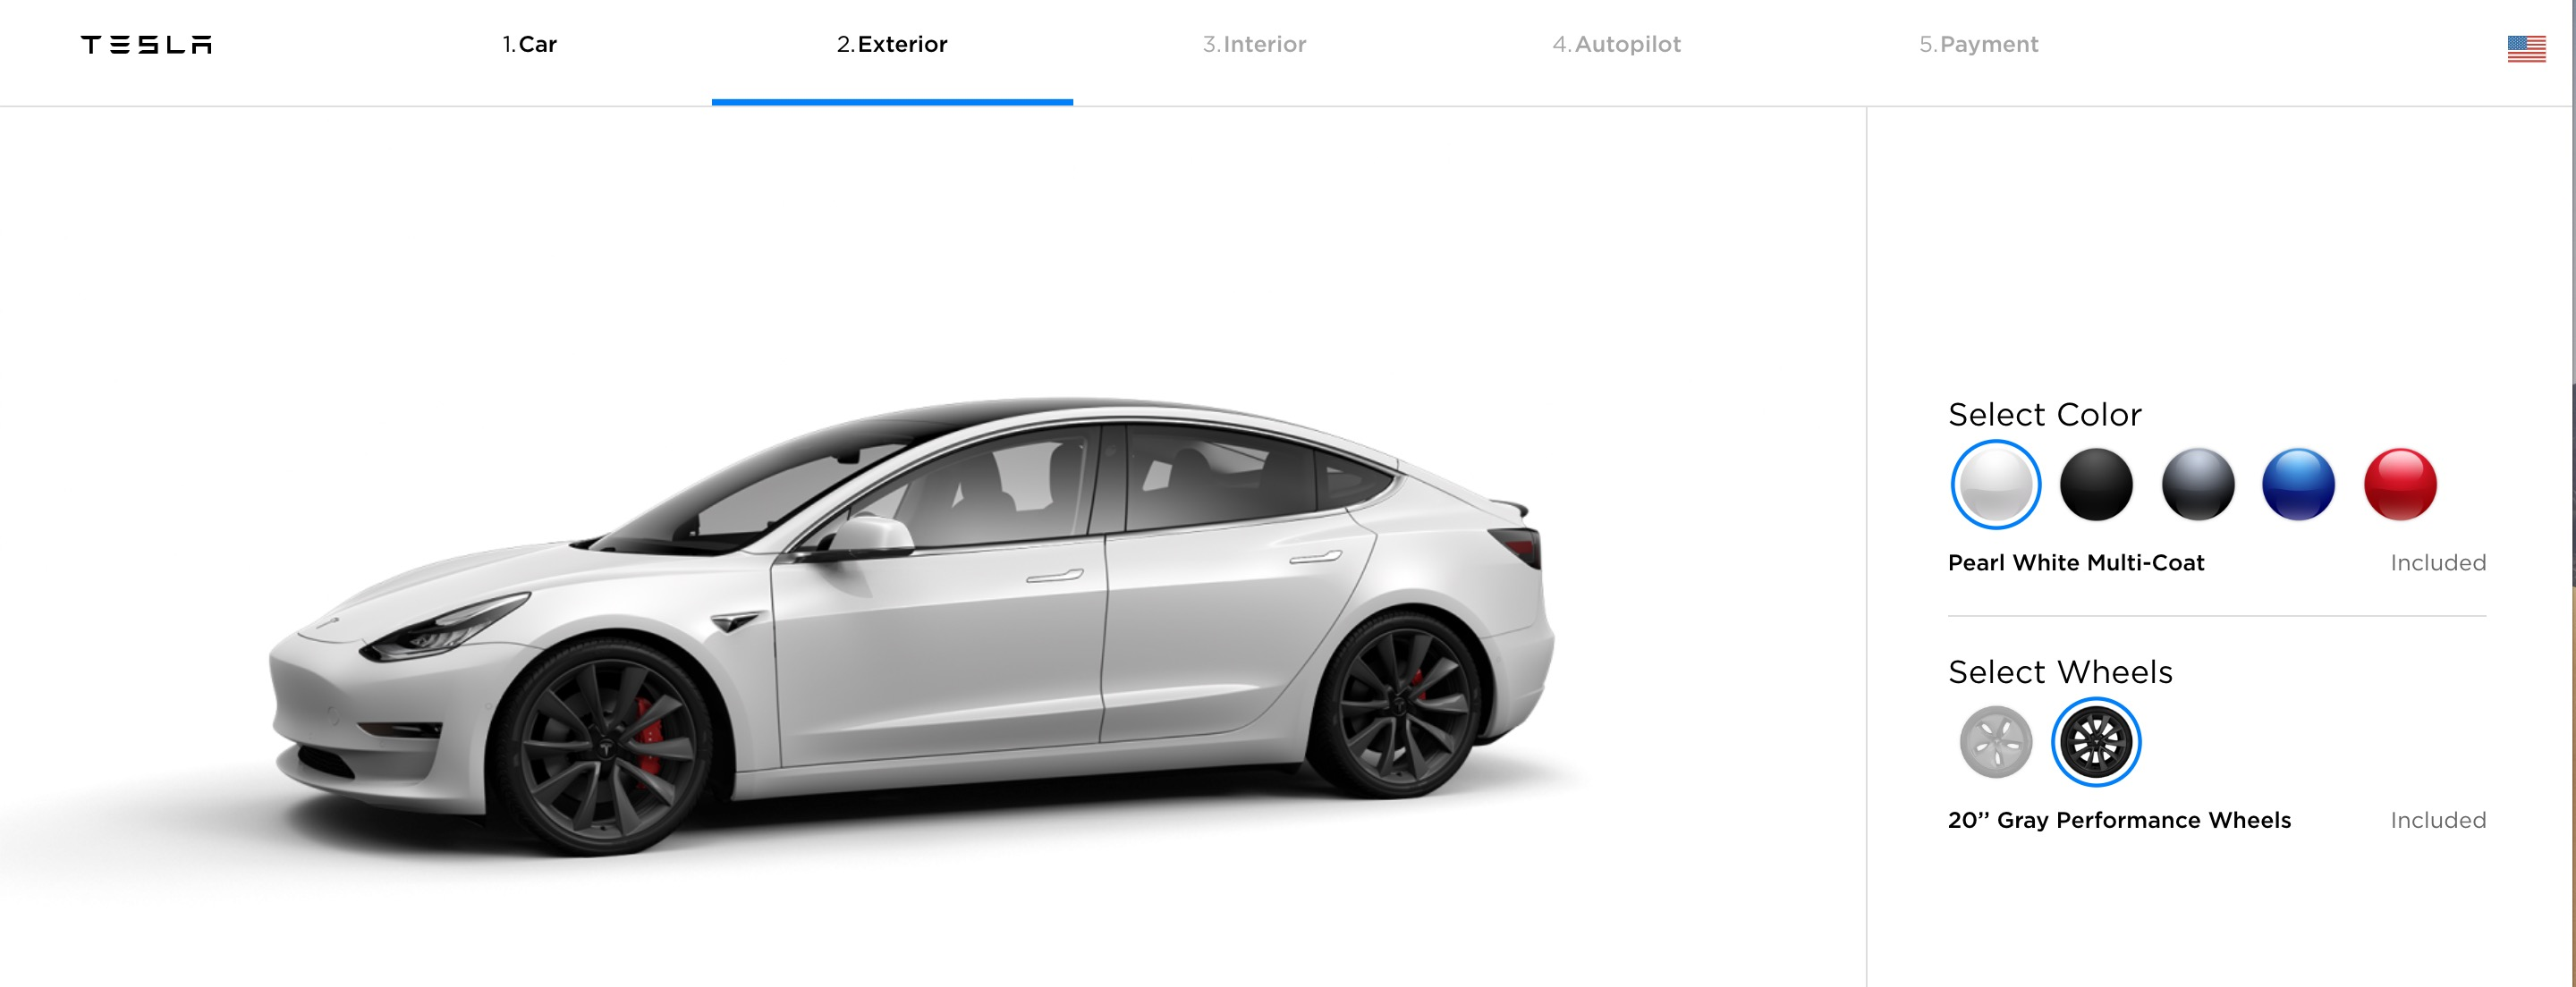 Tesla officially launches new Model 3 Gray Performance wheels - Electrek